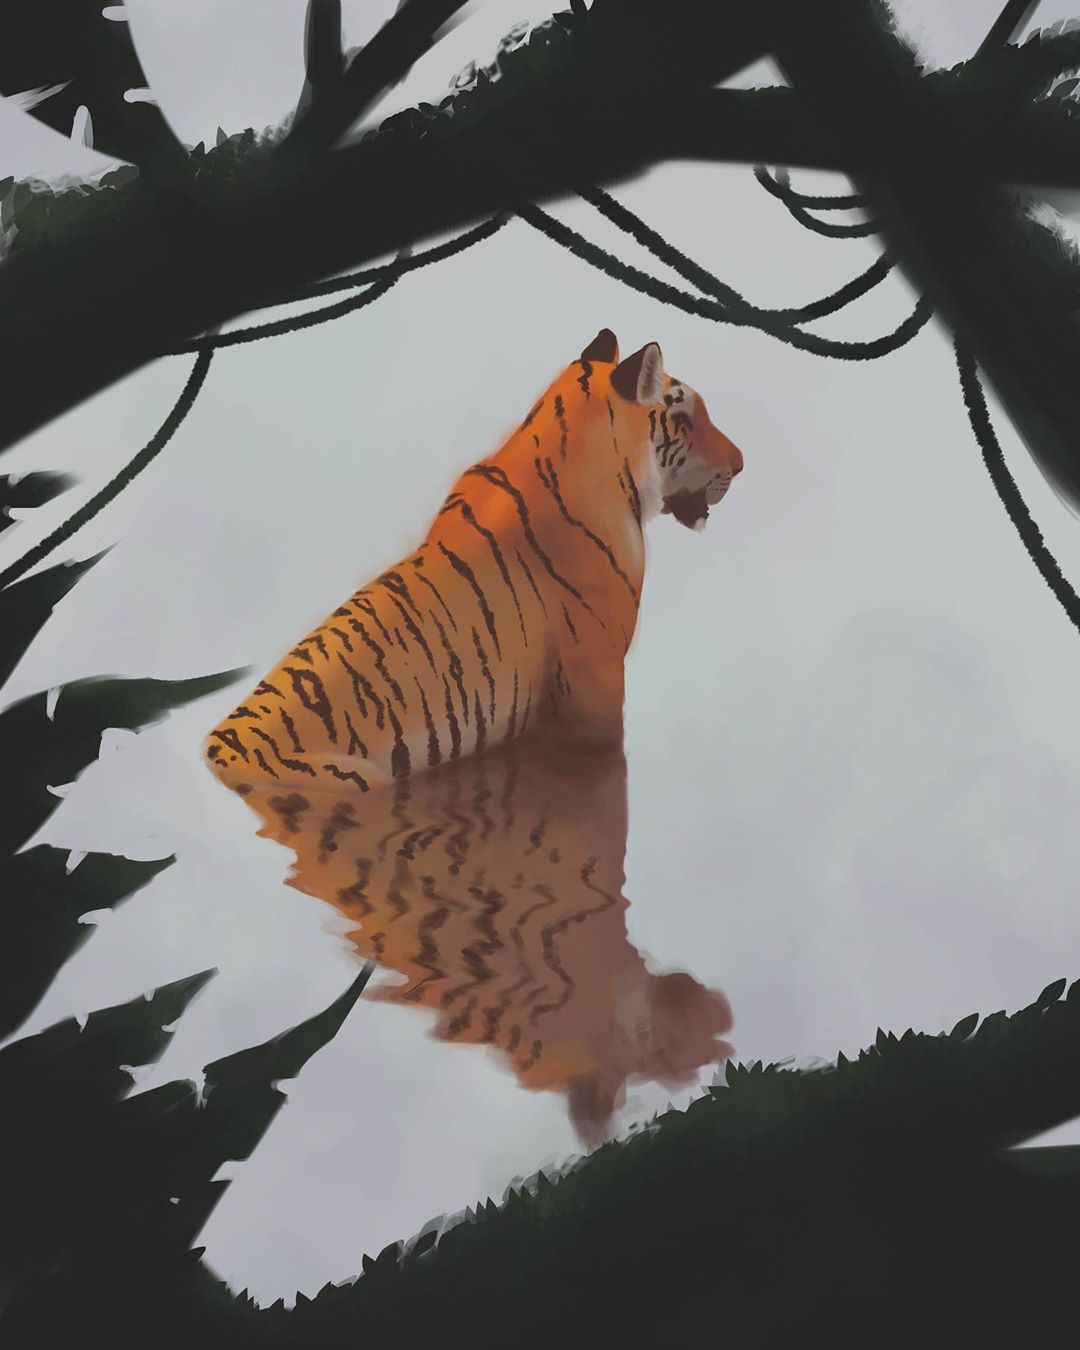 Because we all love tigers. Big cats are great!...